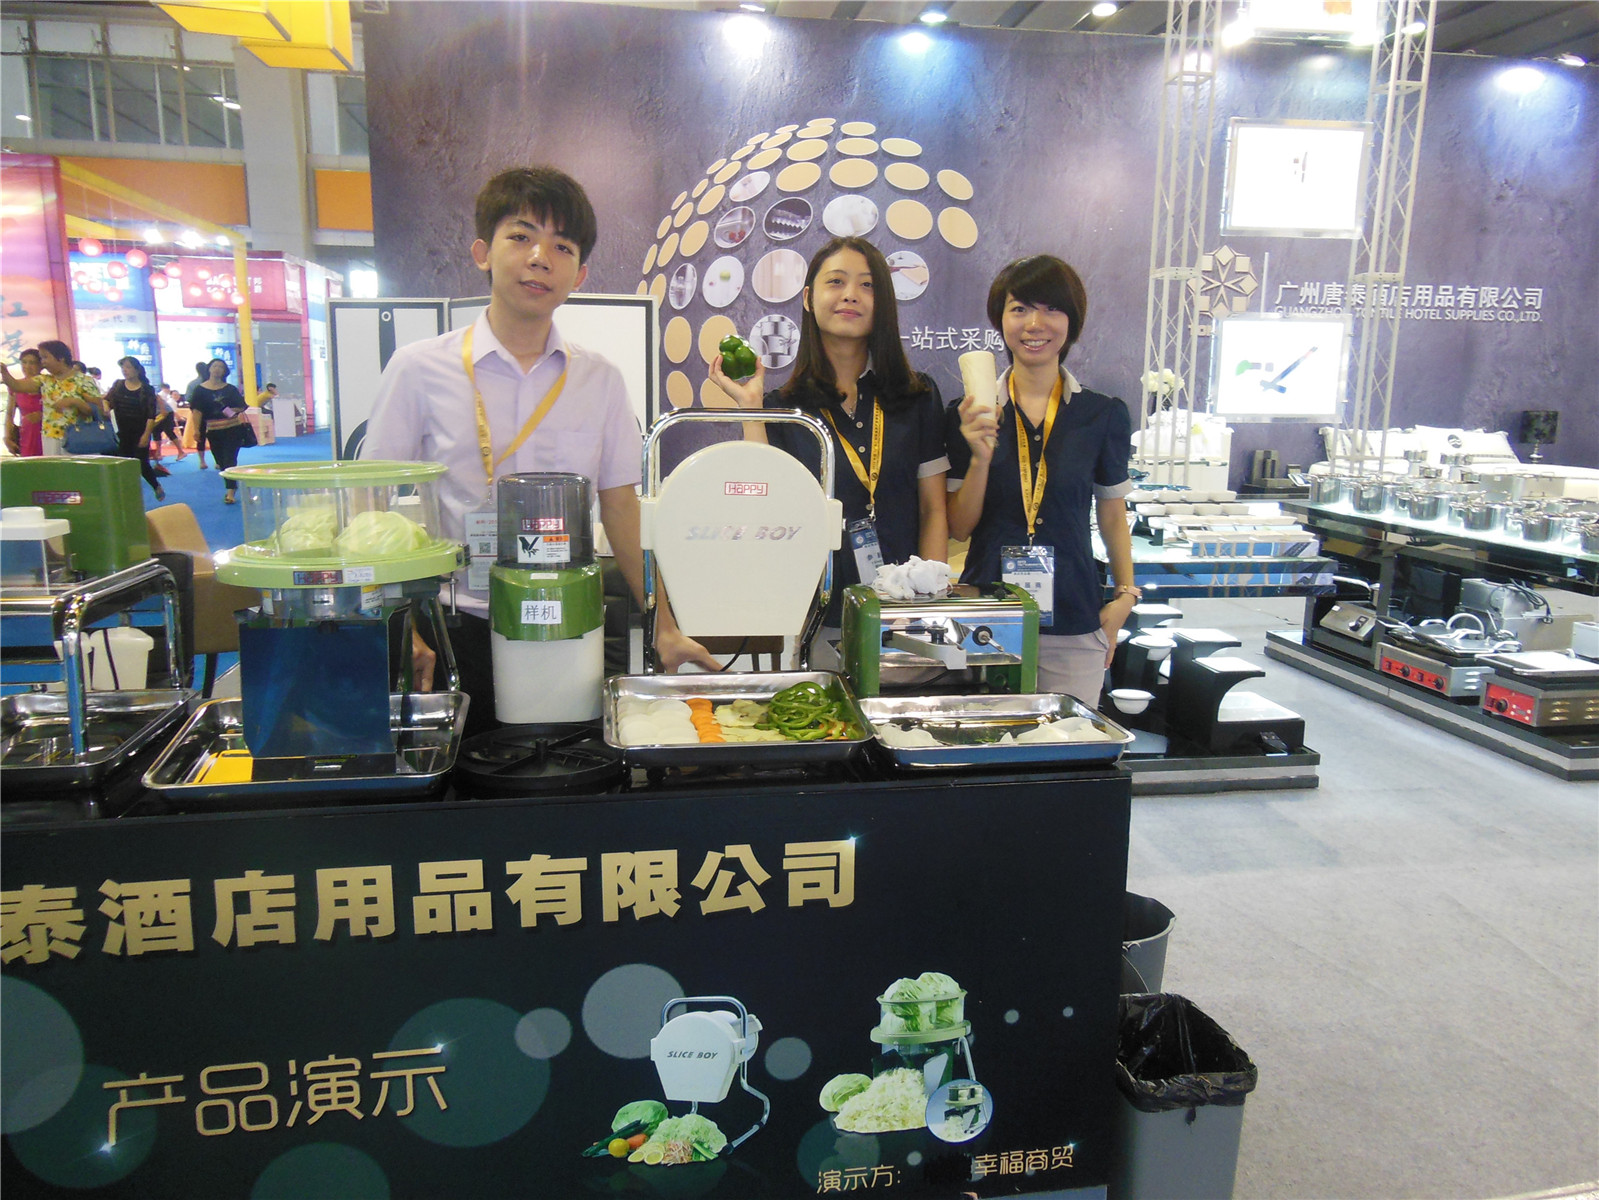 Guangzhou pazhou exhibition-Tontile Team 4